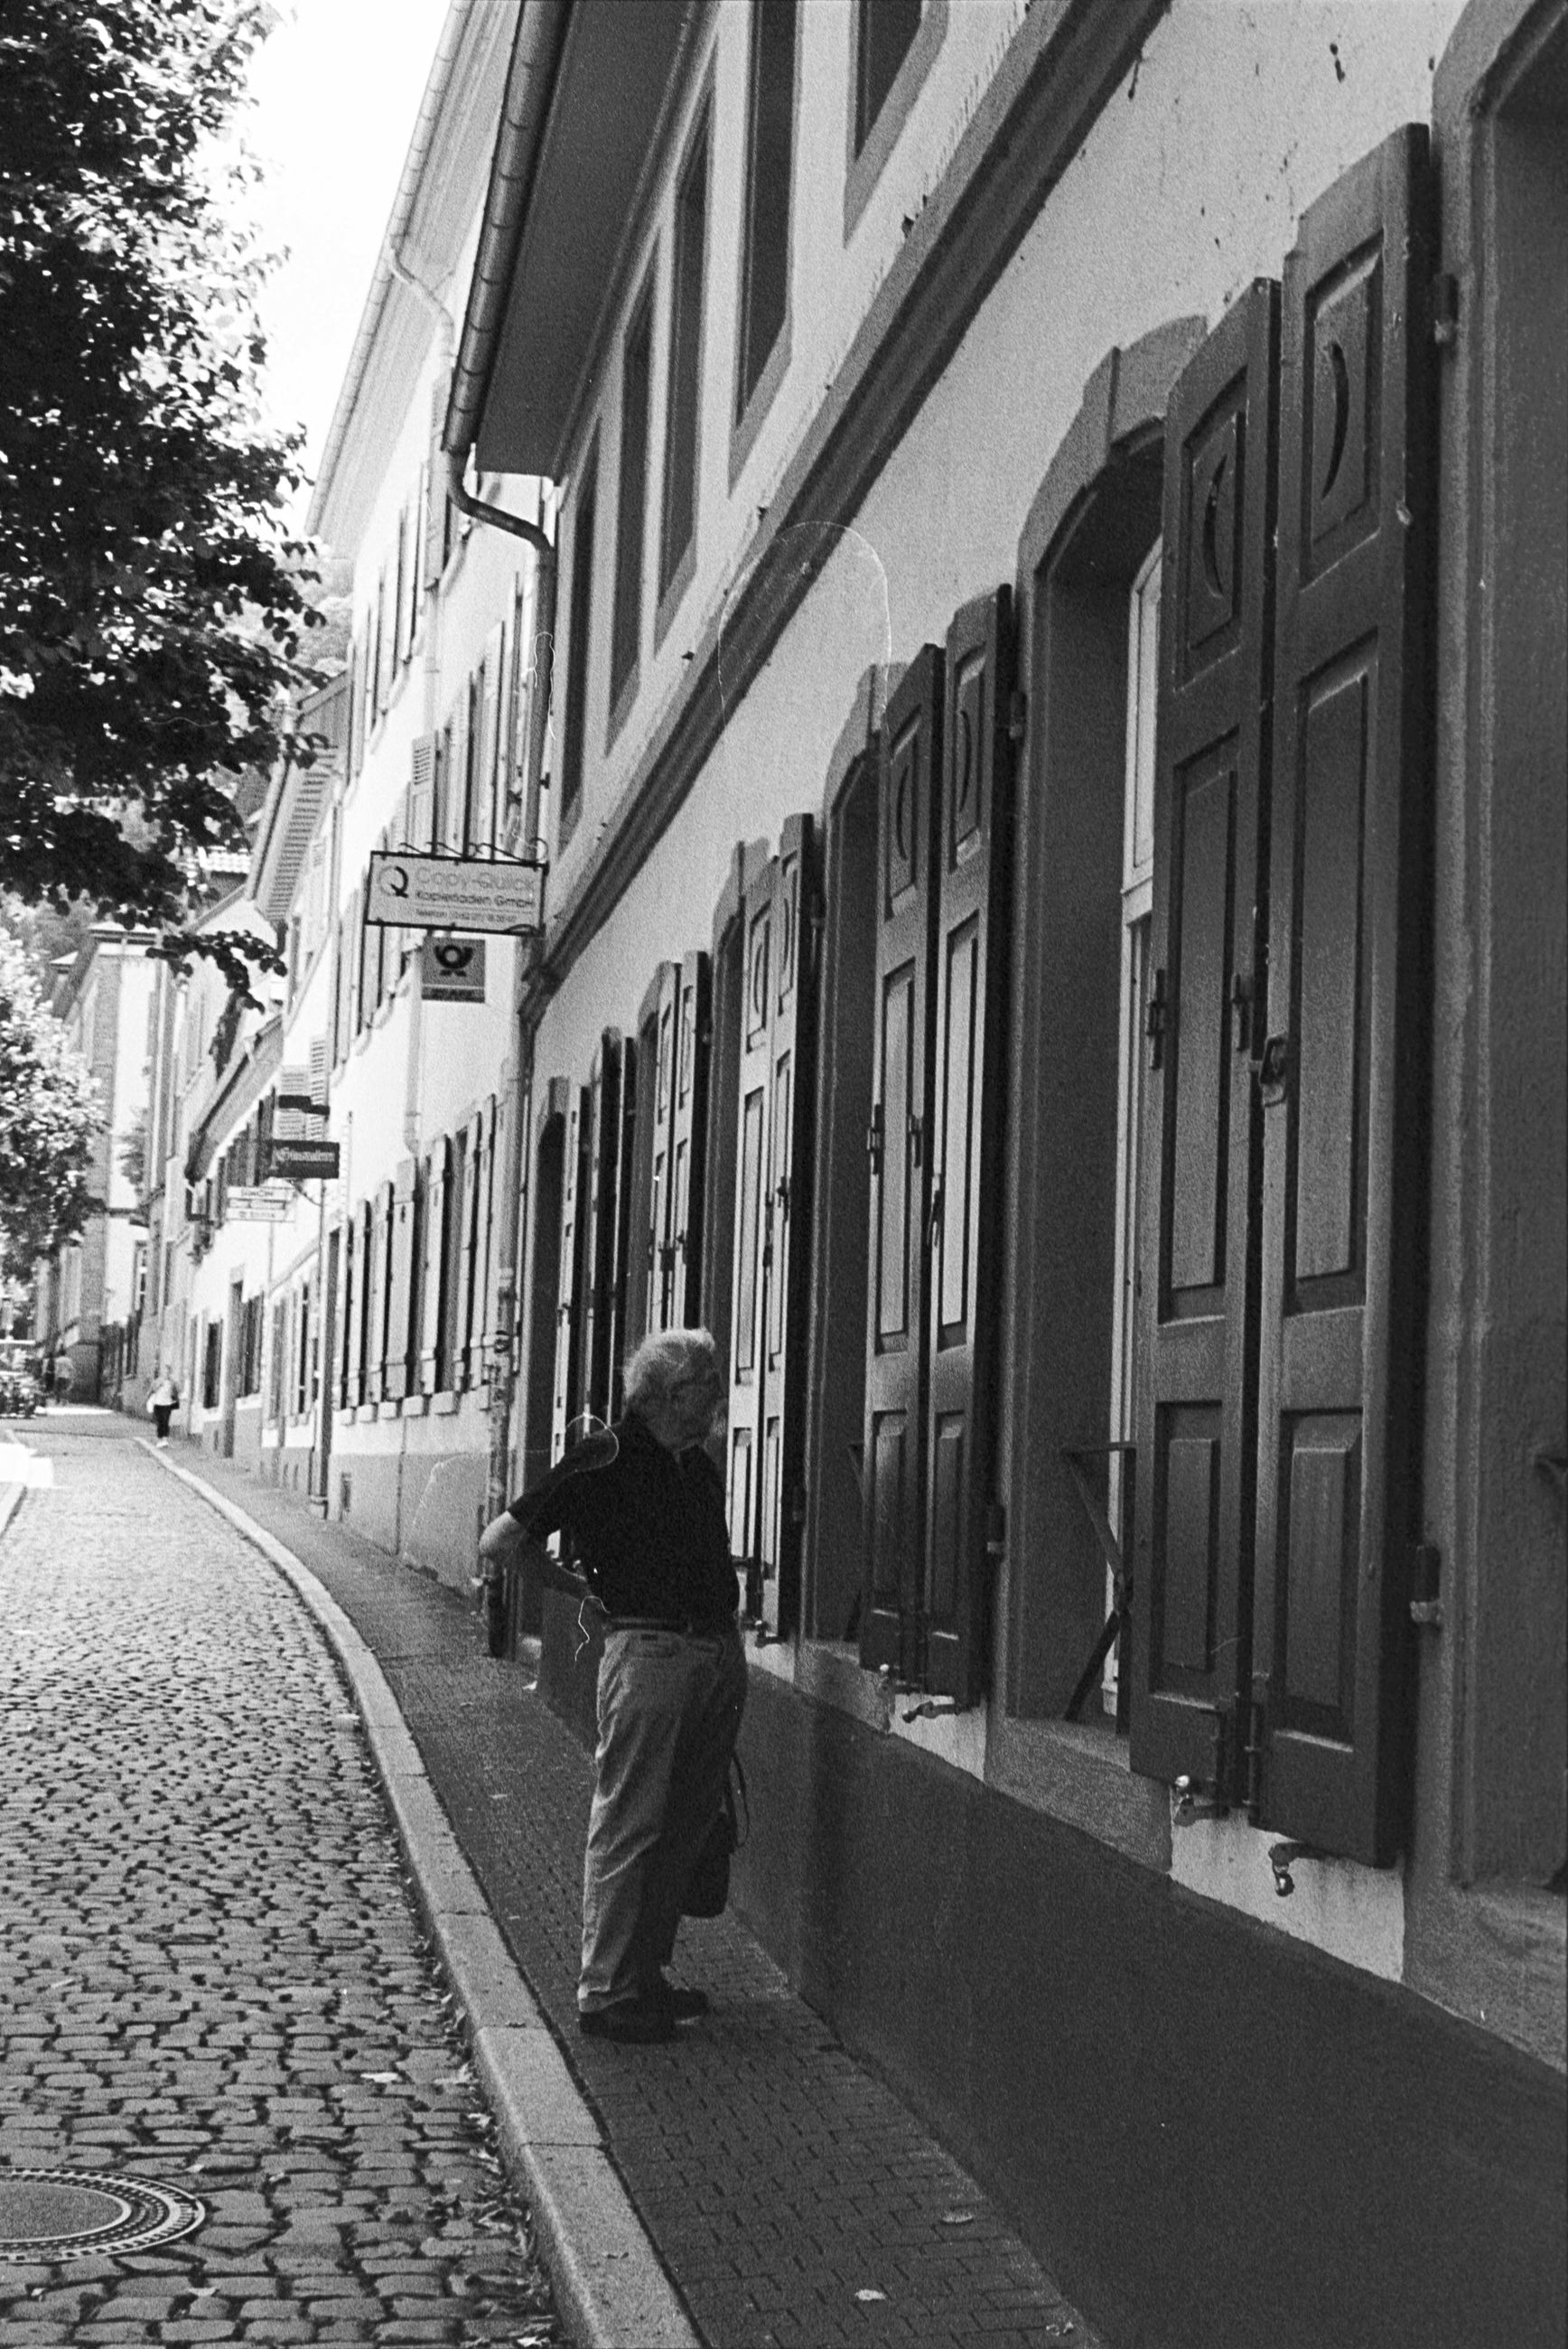 building exterior, architecture, built structure, one person, real people, city, full length, street, lifestyles, building, footpath, leisure activity, day, women, walking, casual clothing, adult, rear view, direction, outdoors, warm clothing